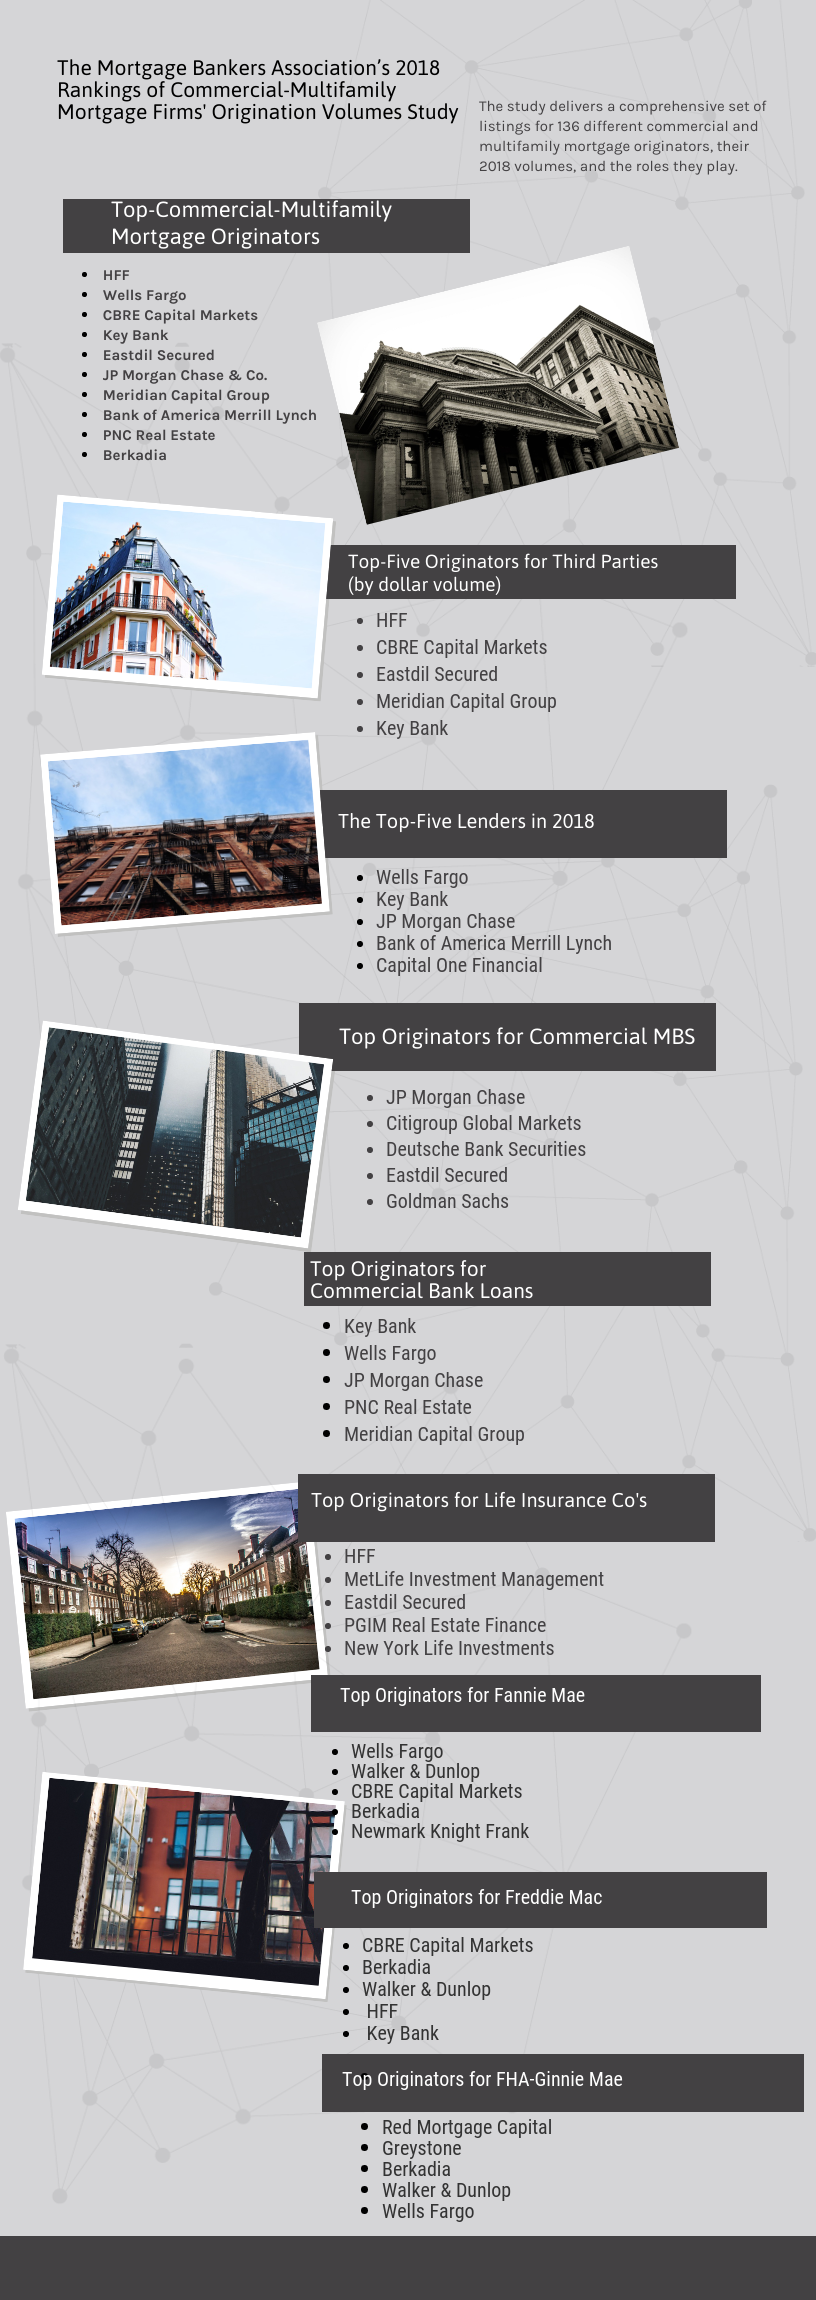 MBA's Commercial-Multifamily Rankings